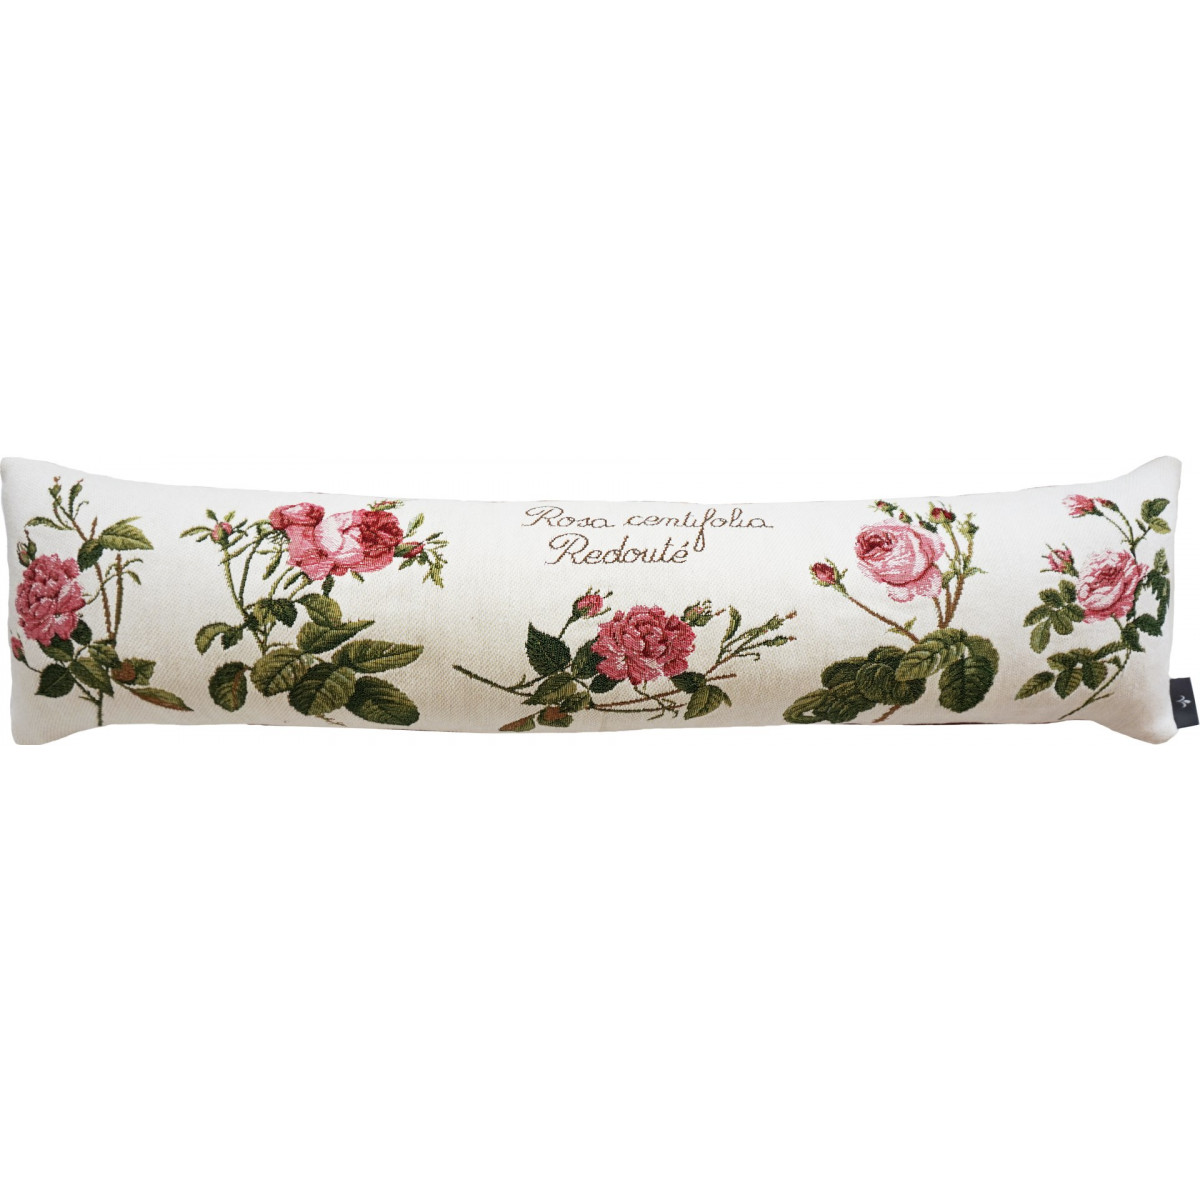 Coussin roses de redouté made in france blanc 25x90